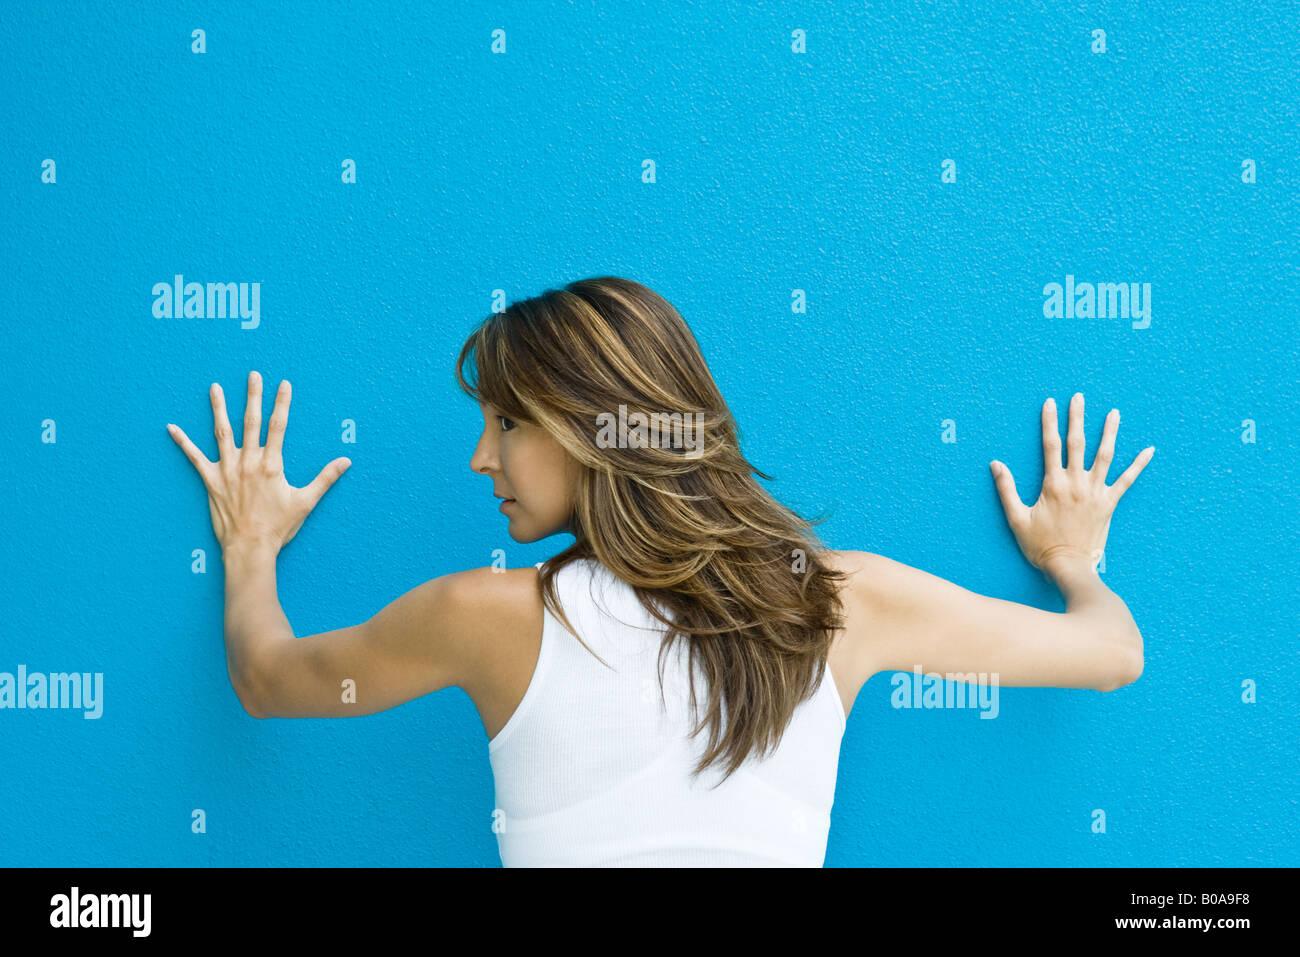 Woman standing with hands against blue wall, looking over shoulder, rear view - Stock Image